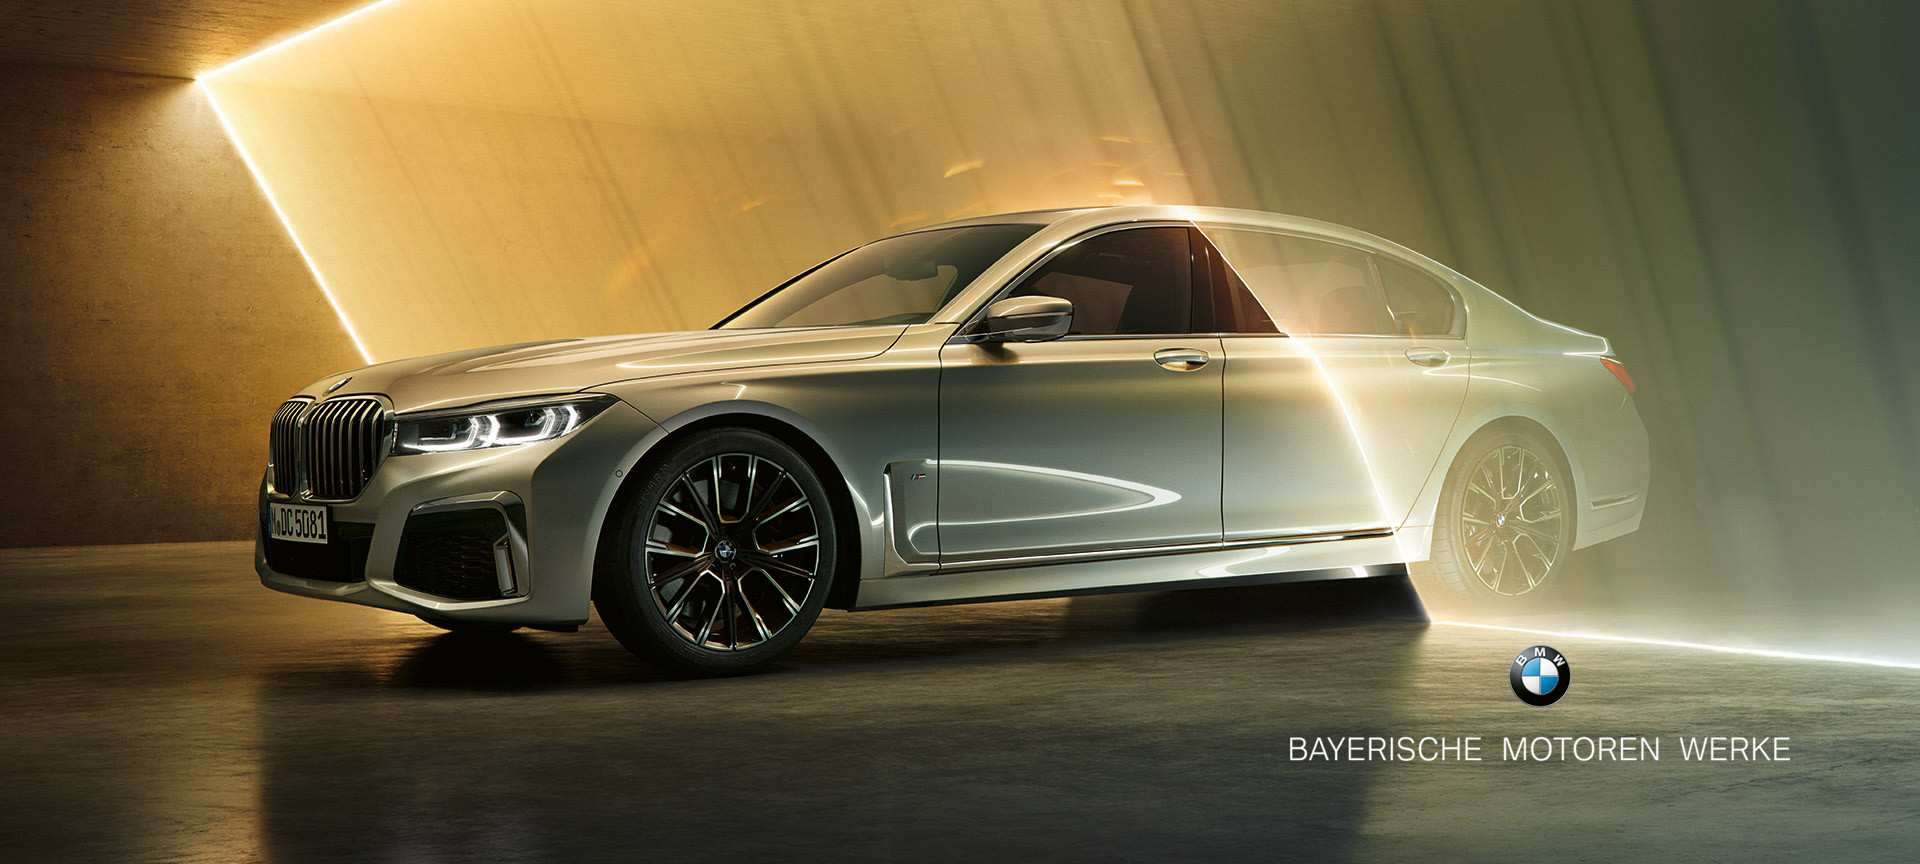 61 A 2020 BMW 7 Series Perfection New Specs And Review